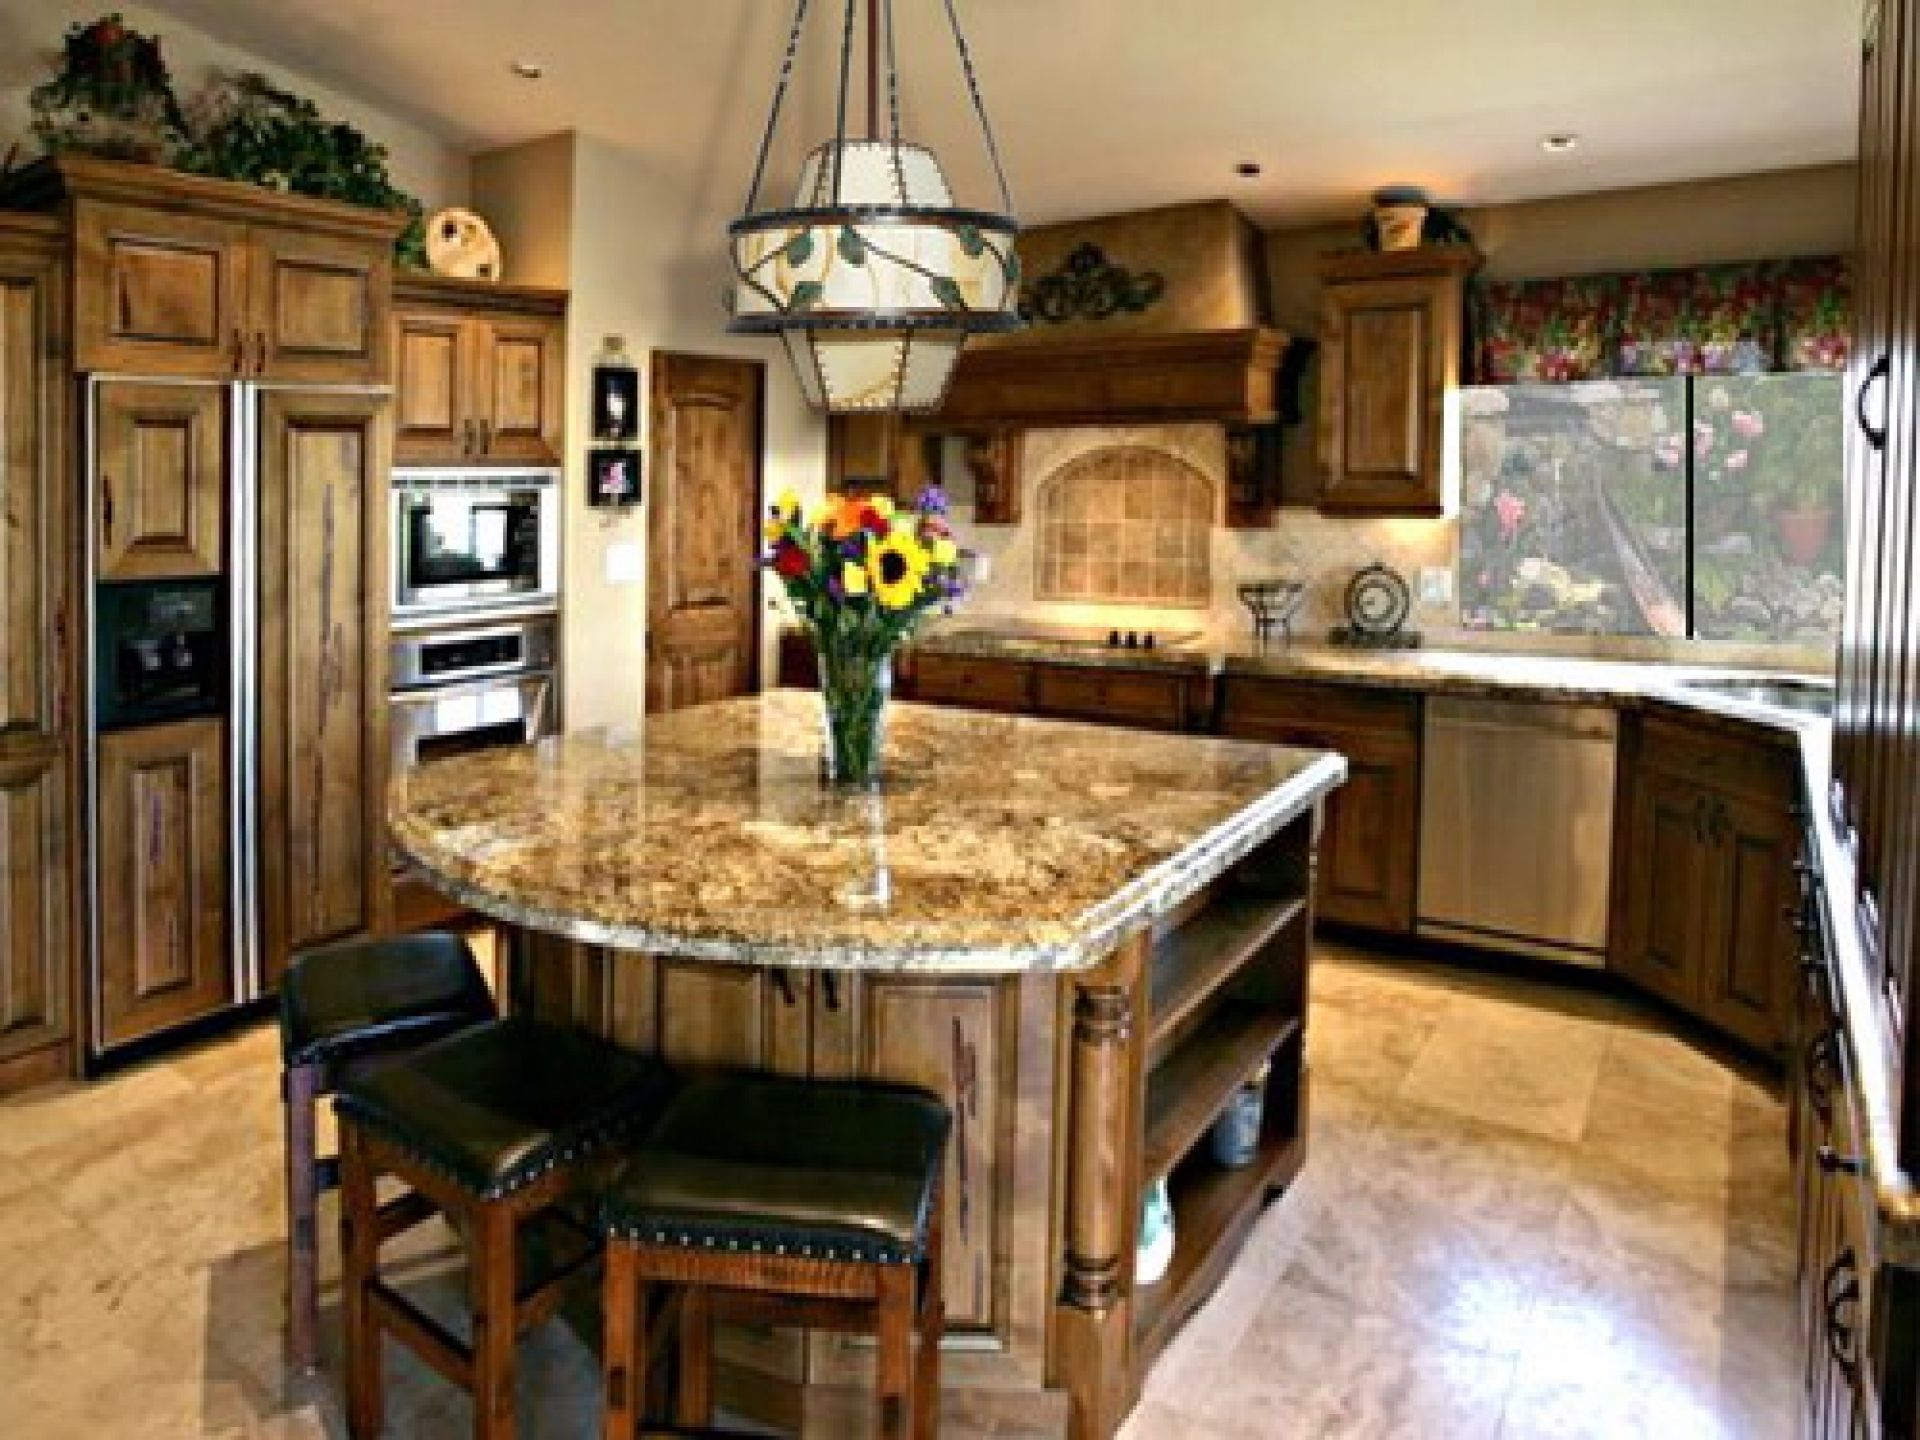 Kitchen idea picture layout ideas island wall decorating wall